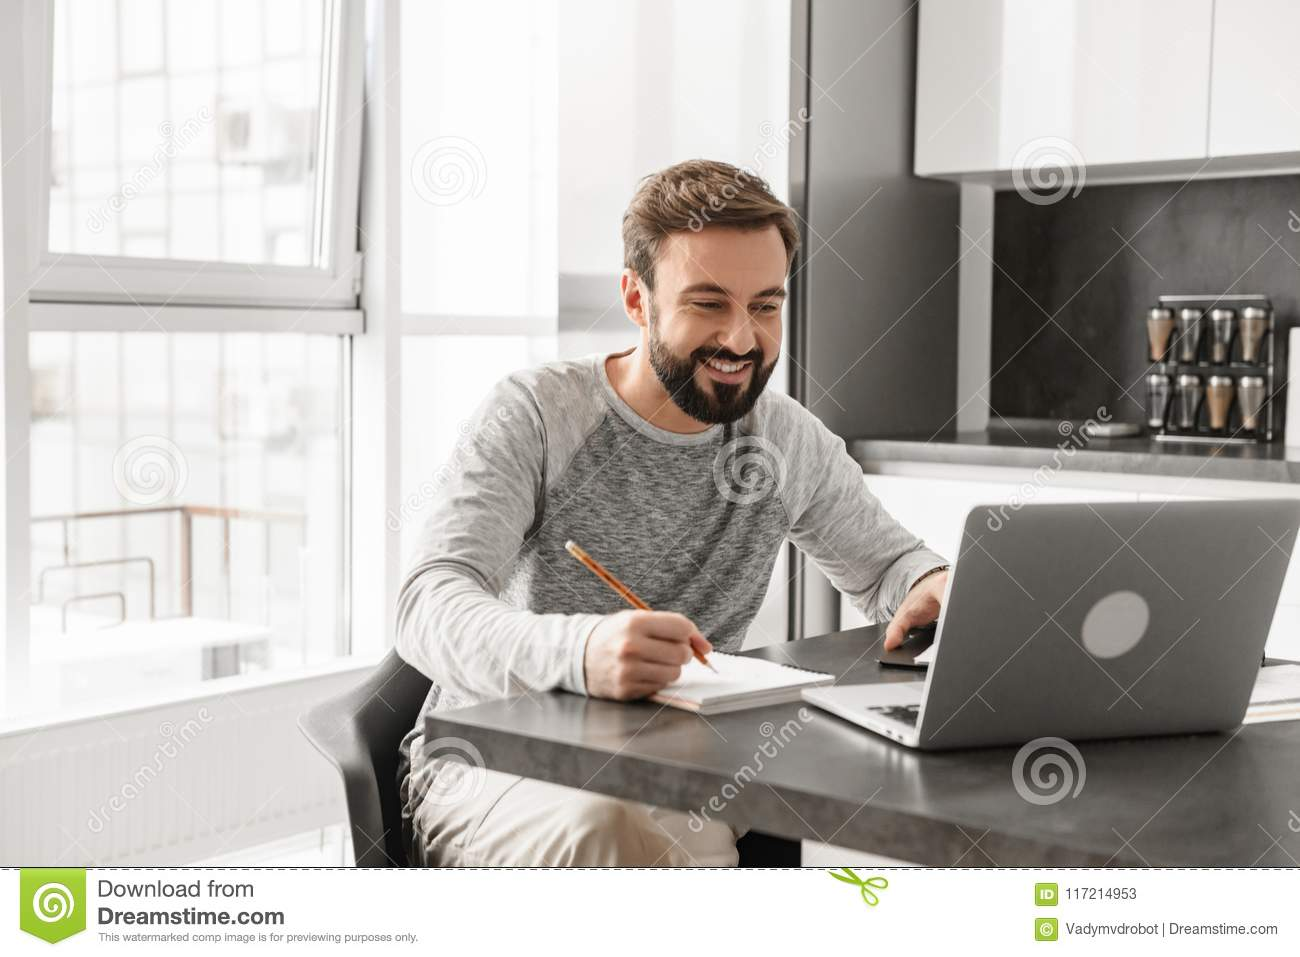 Portrait of a happy young man working on laptop